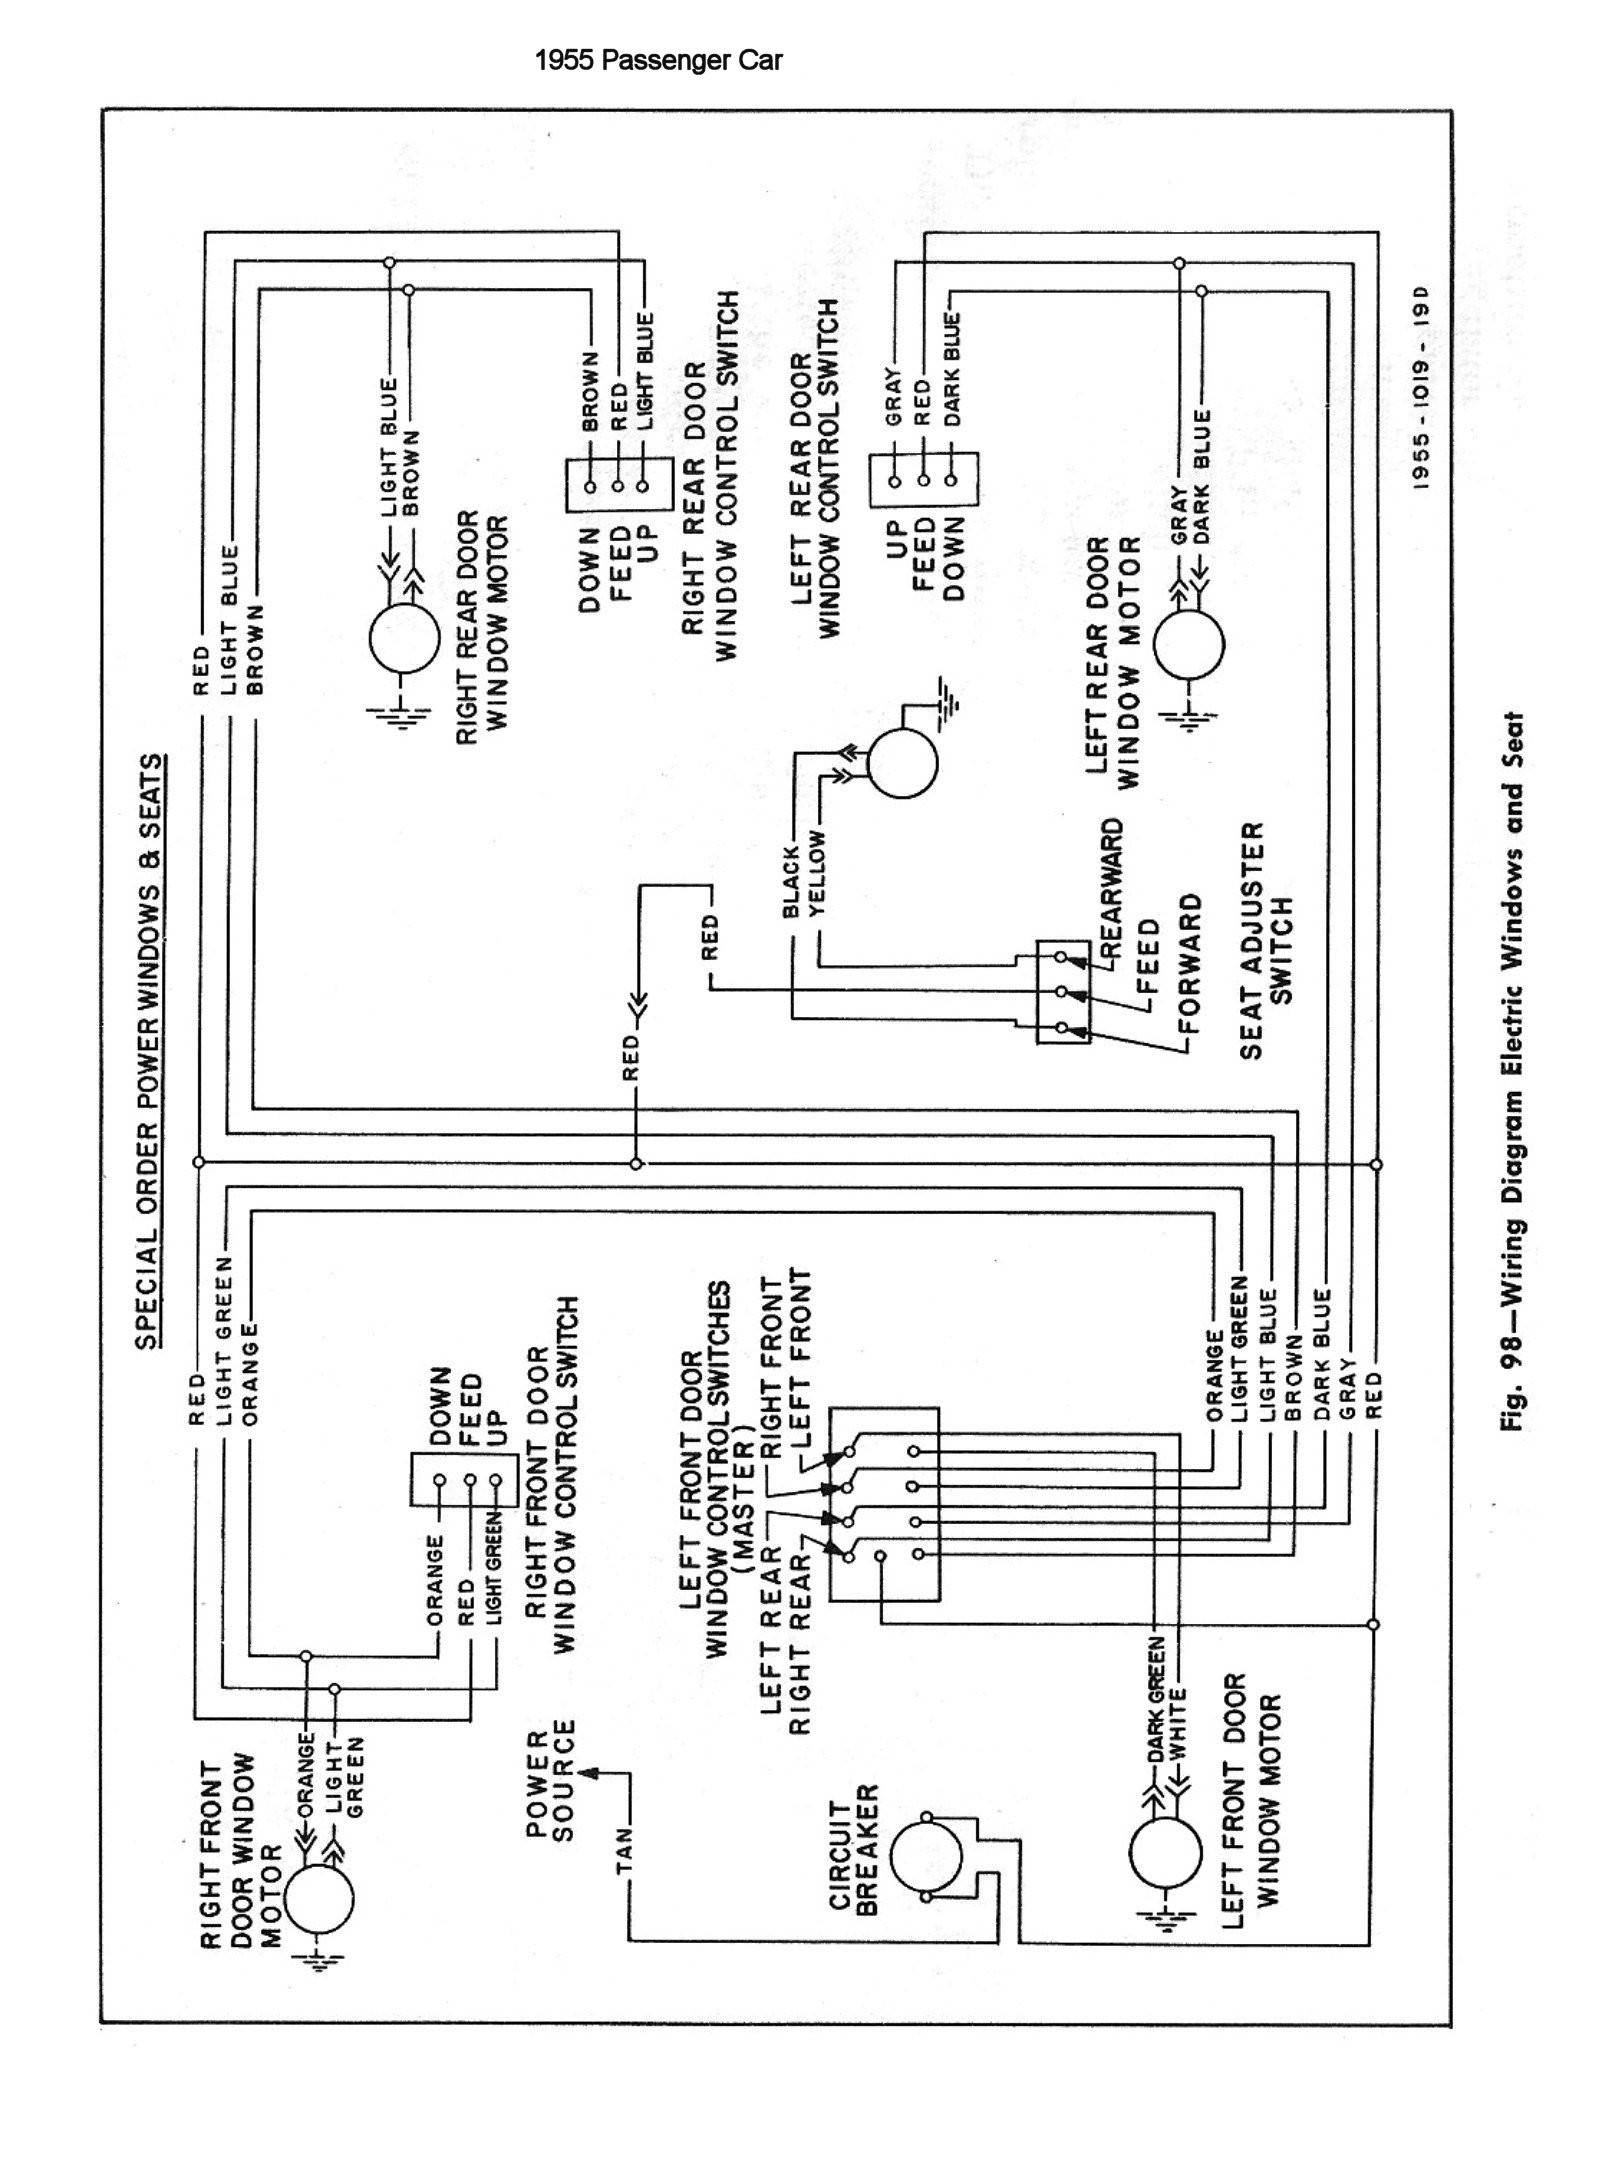 1966 gmc c10 wiring diagram